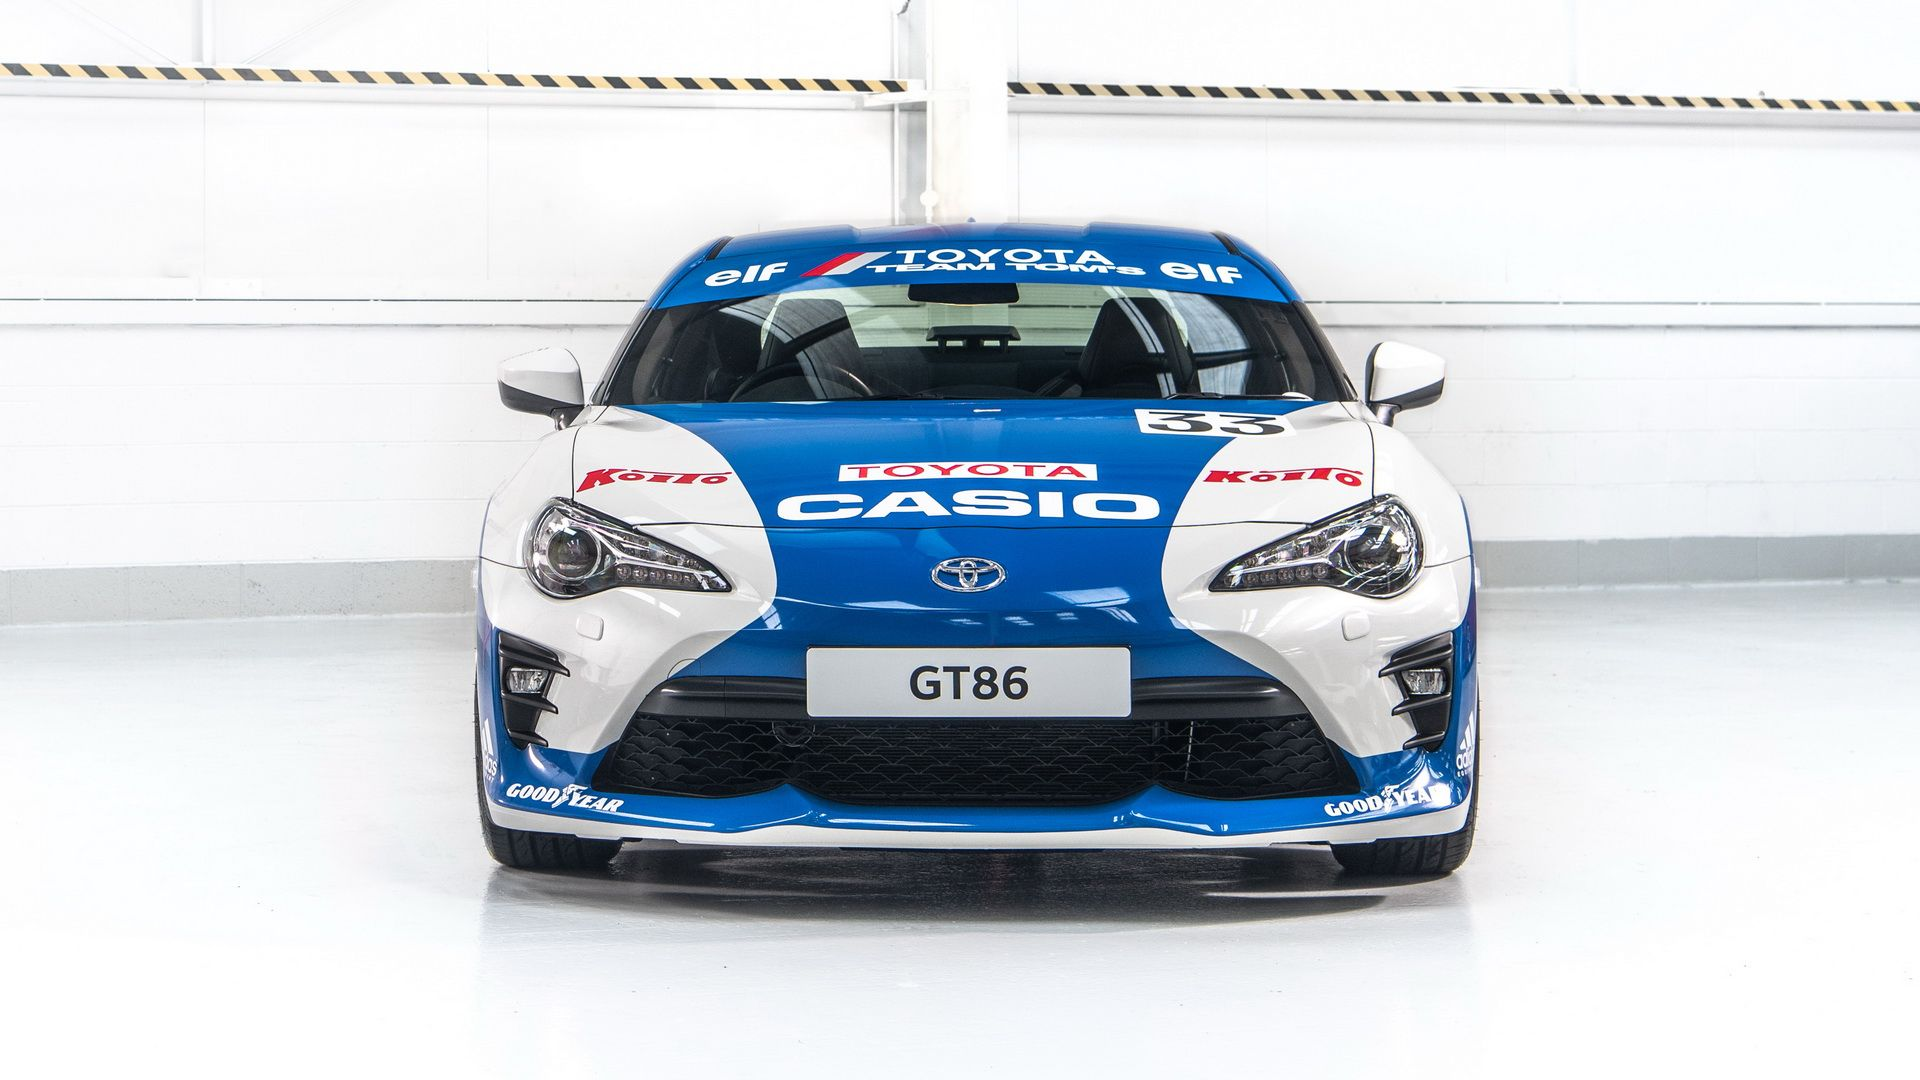 toyota-gt86-heritage-livery-24-hours-of-le-mans-9